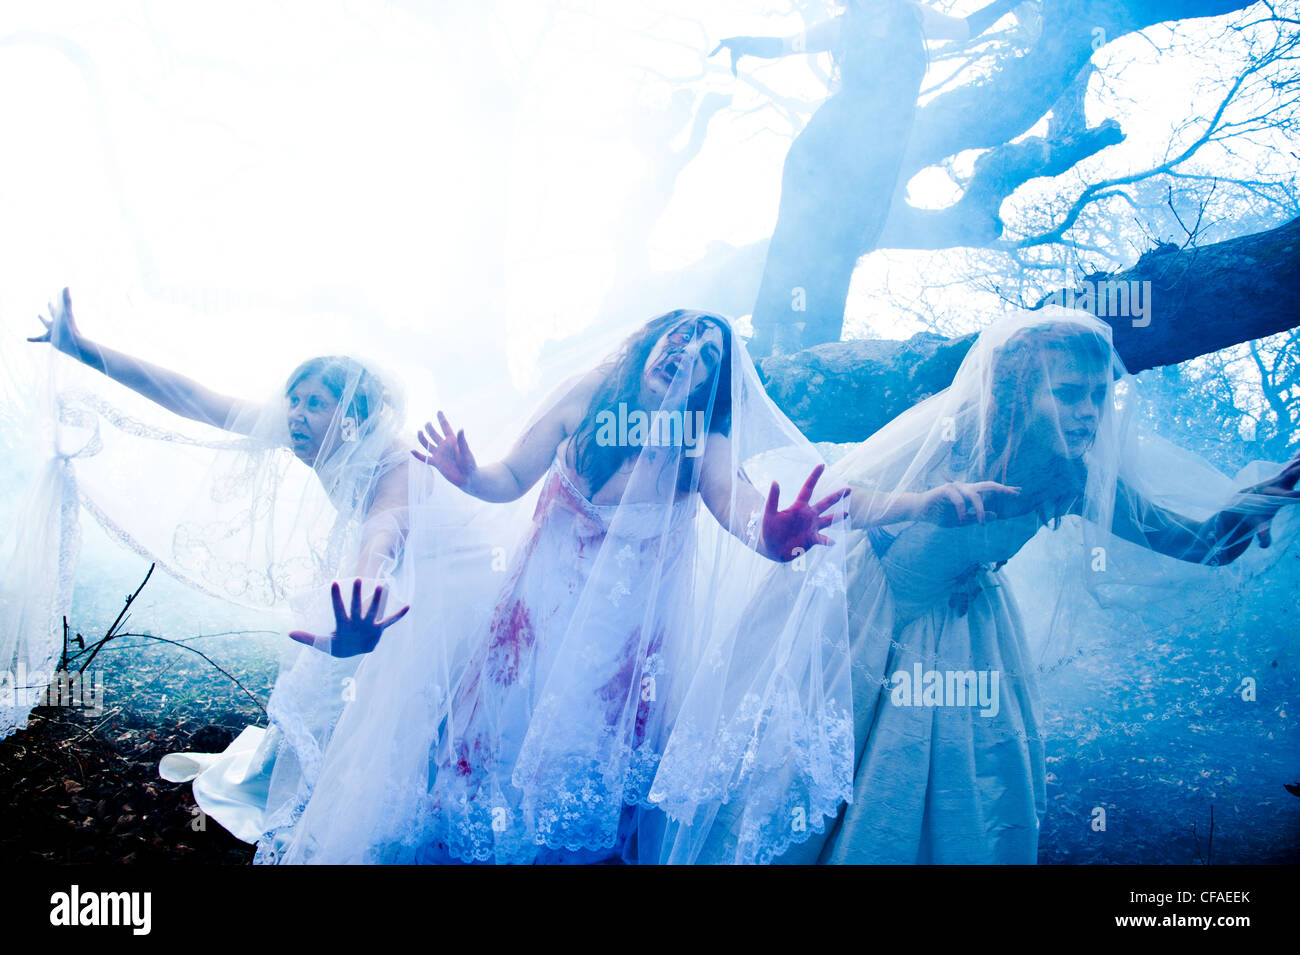 Three young women dressed as brides taking part in a Zombie bride 'trash the wedding dress' - Stock Image